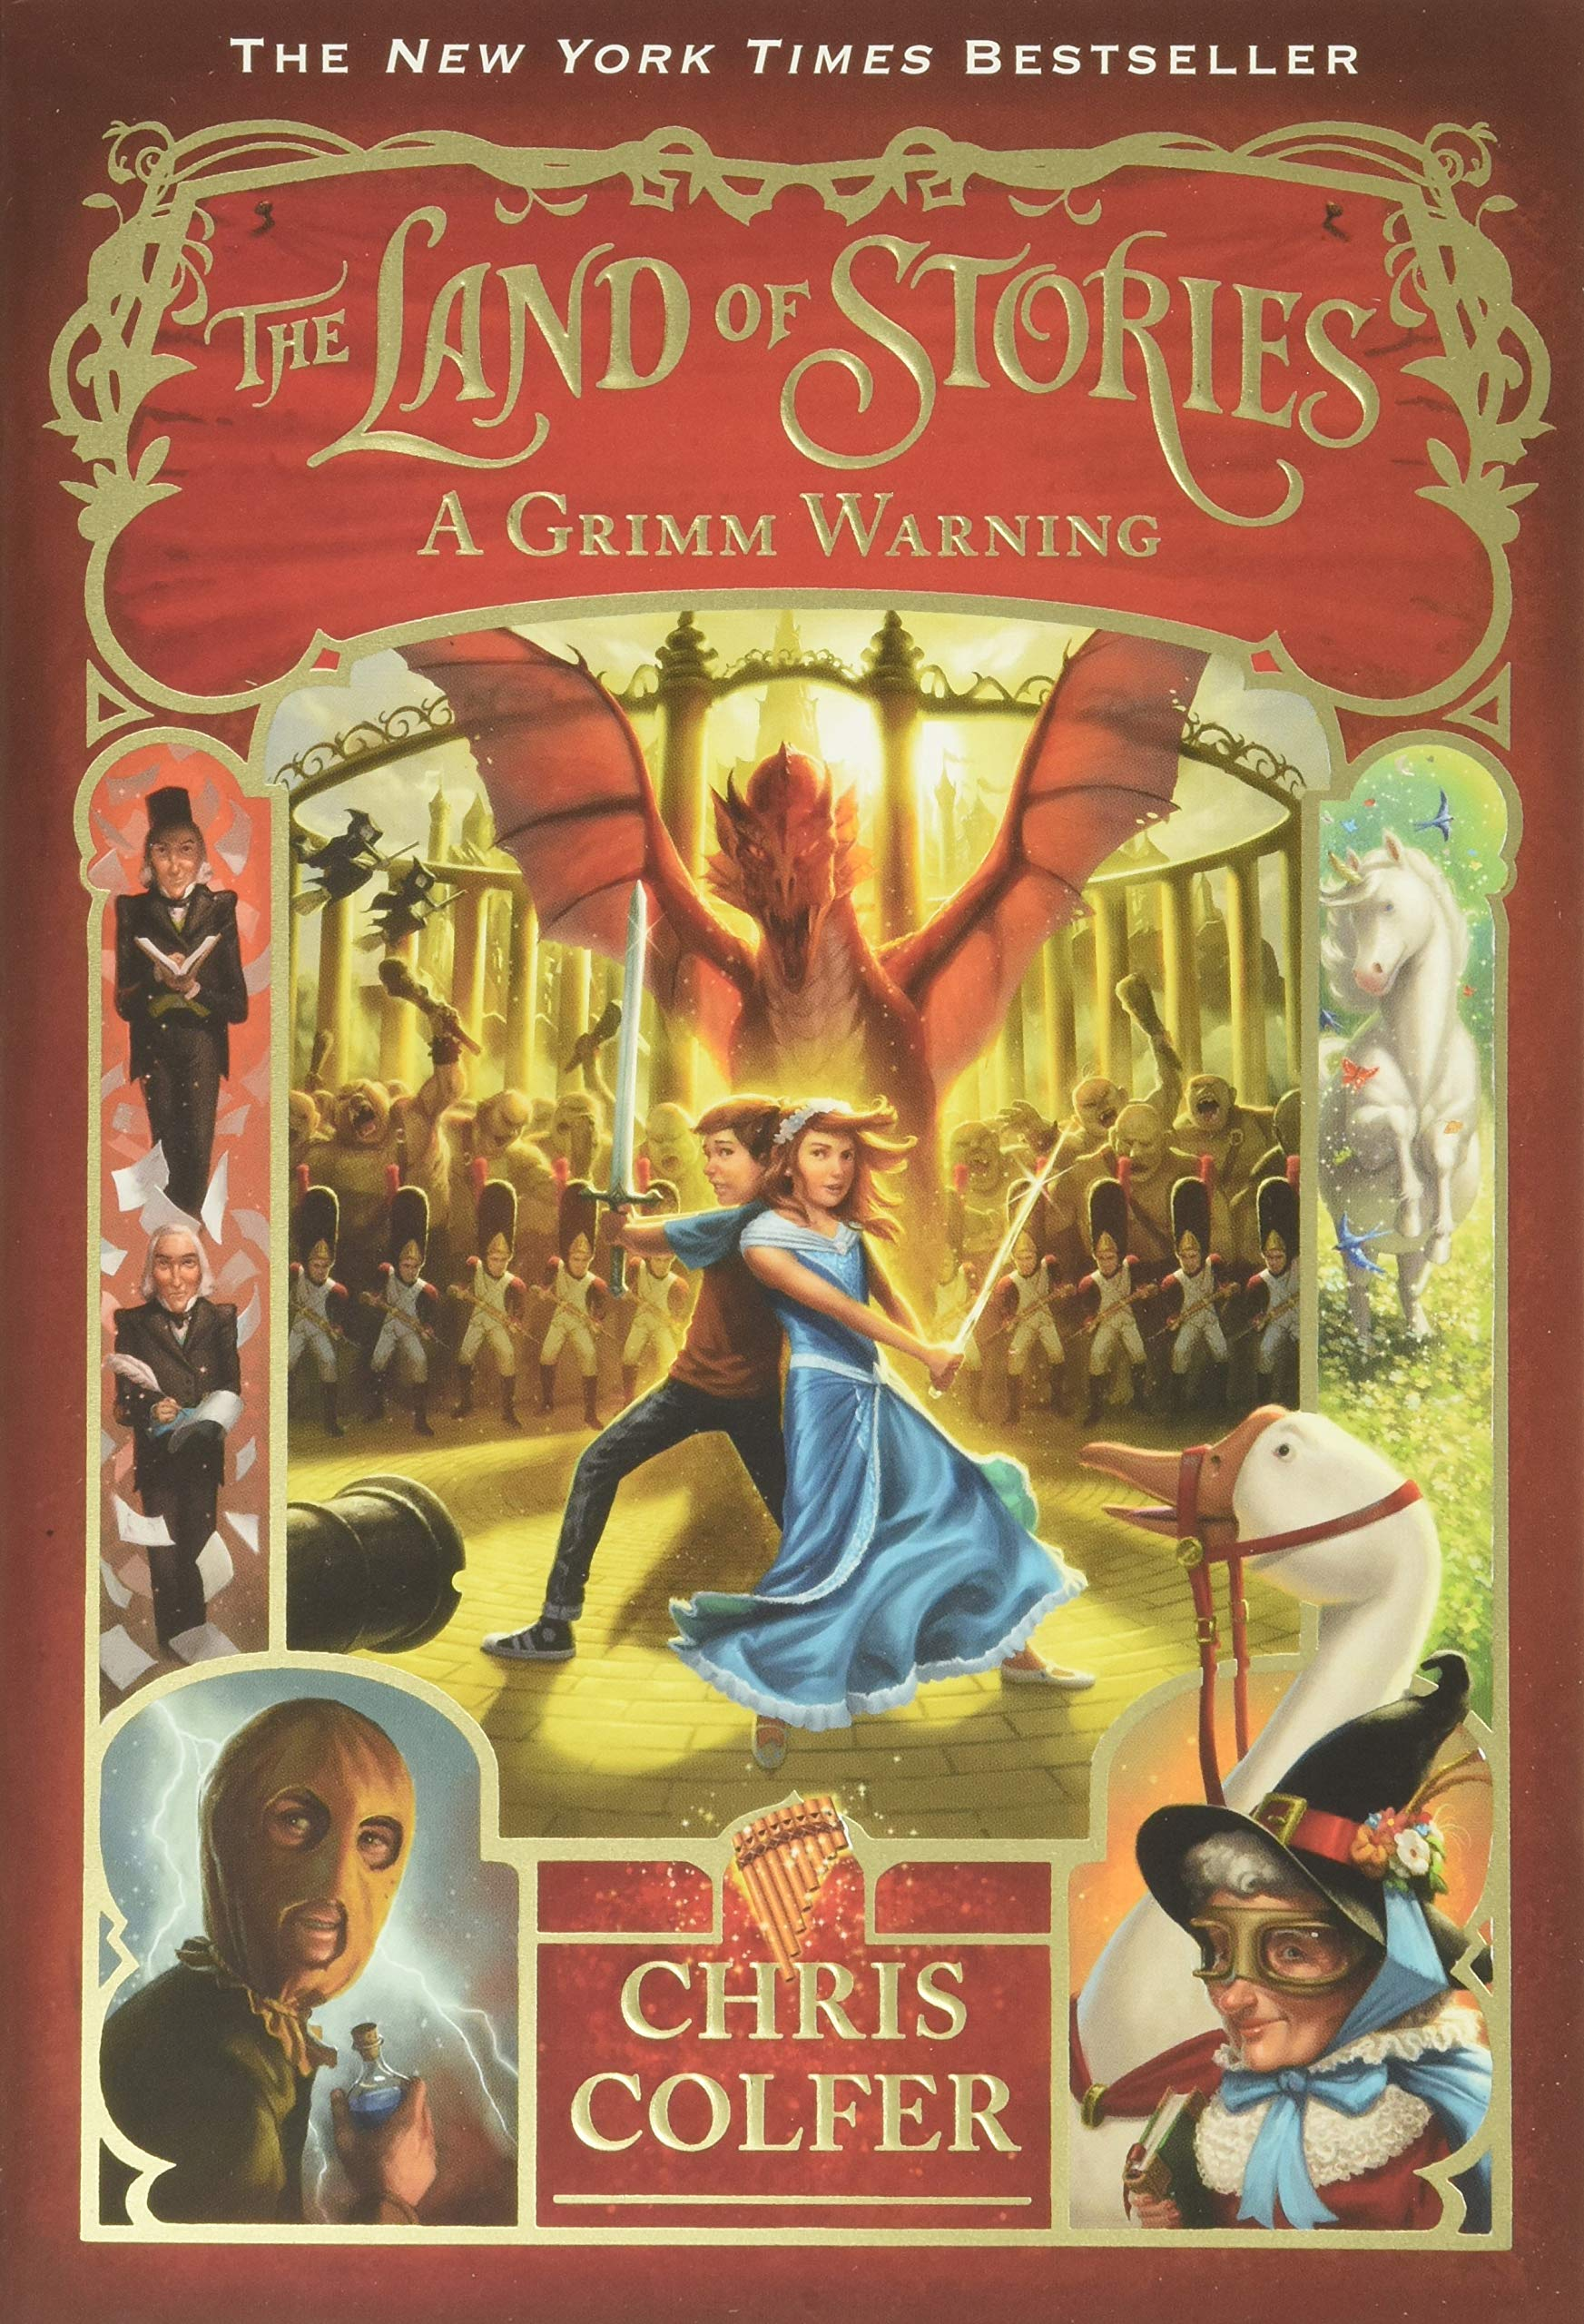 An inspirational book full of classic fairytales: The 12 Labours of Dad and Other Adventures 1